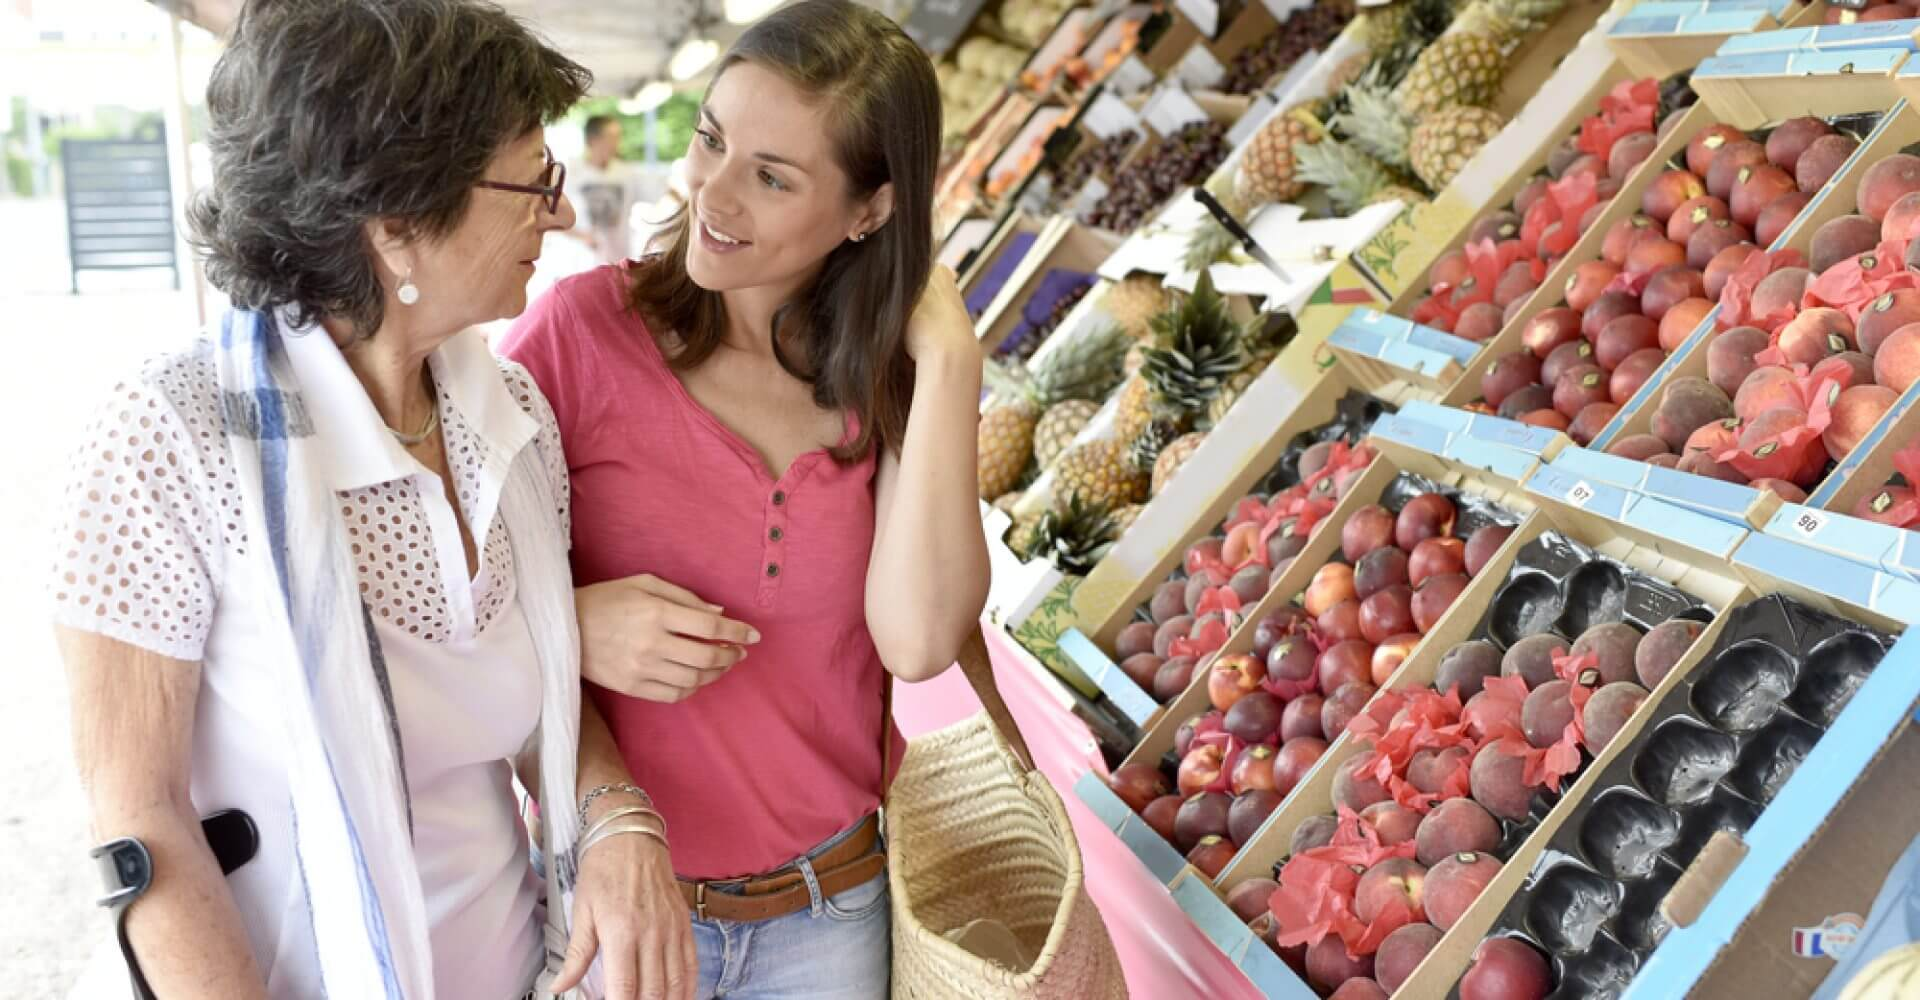 Senior,Woman,Going,To,Grocery,Store,With,Help,Of,Carer